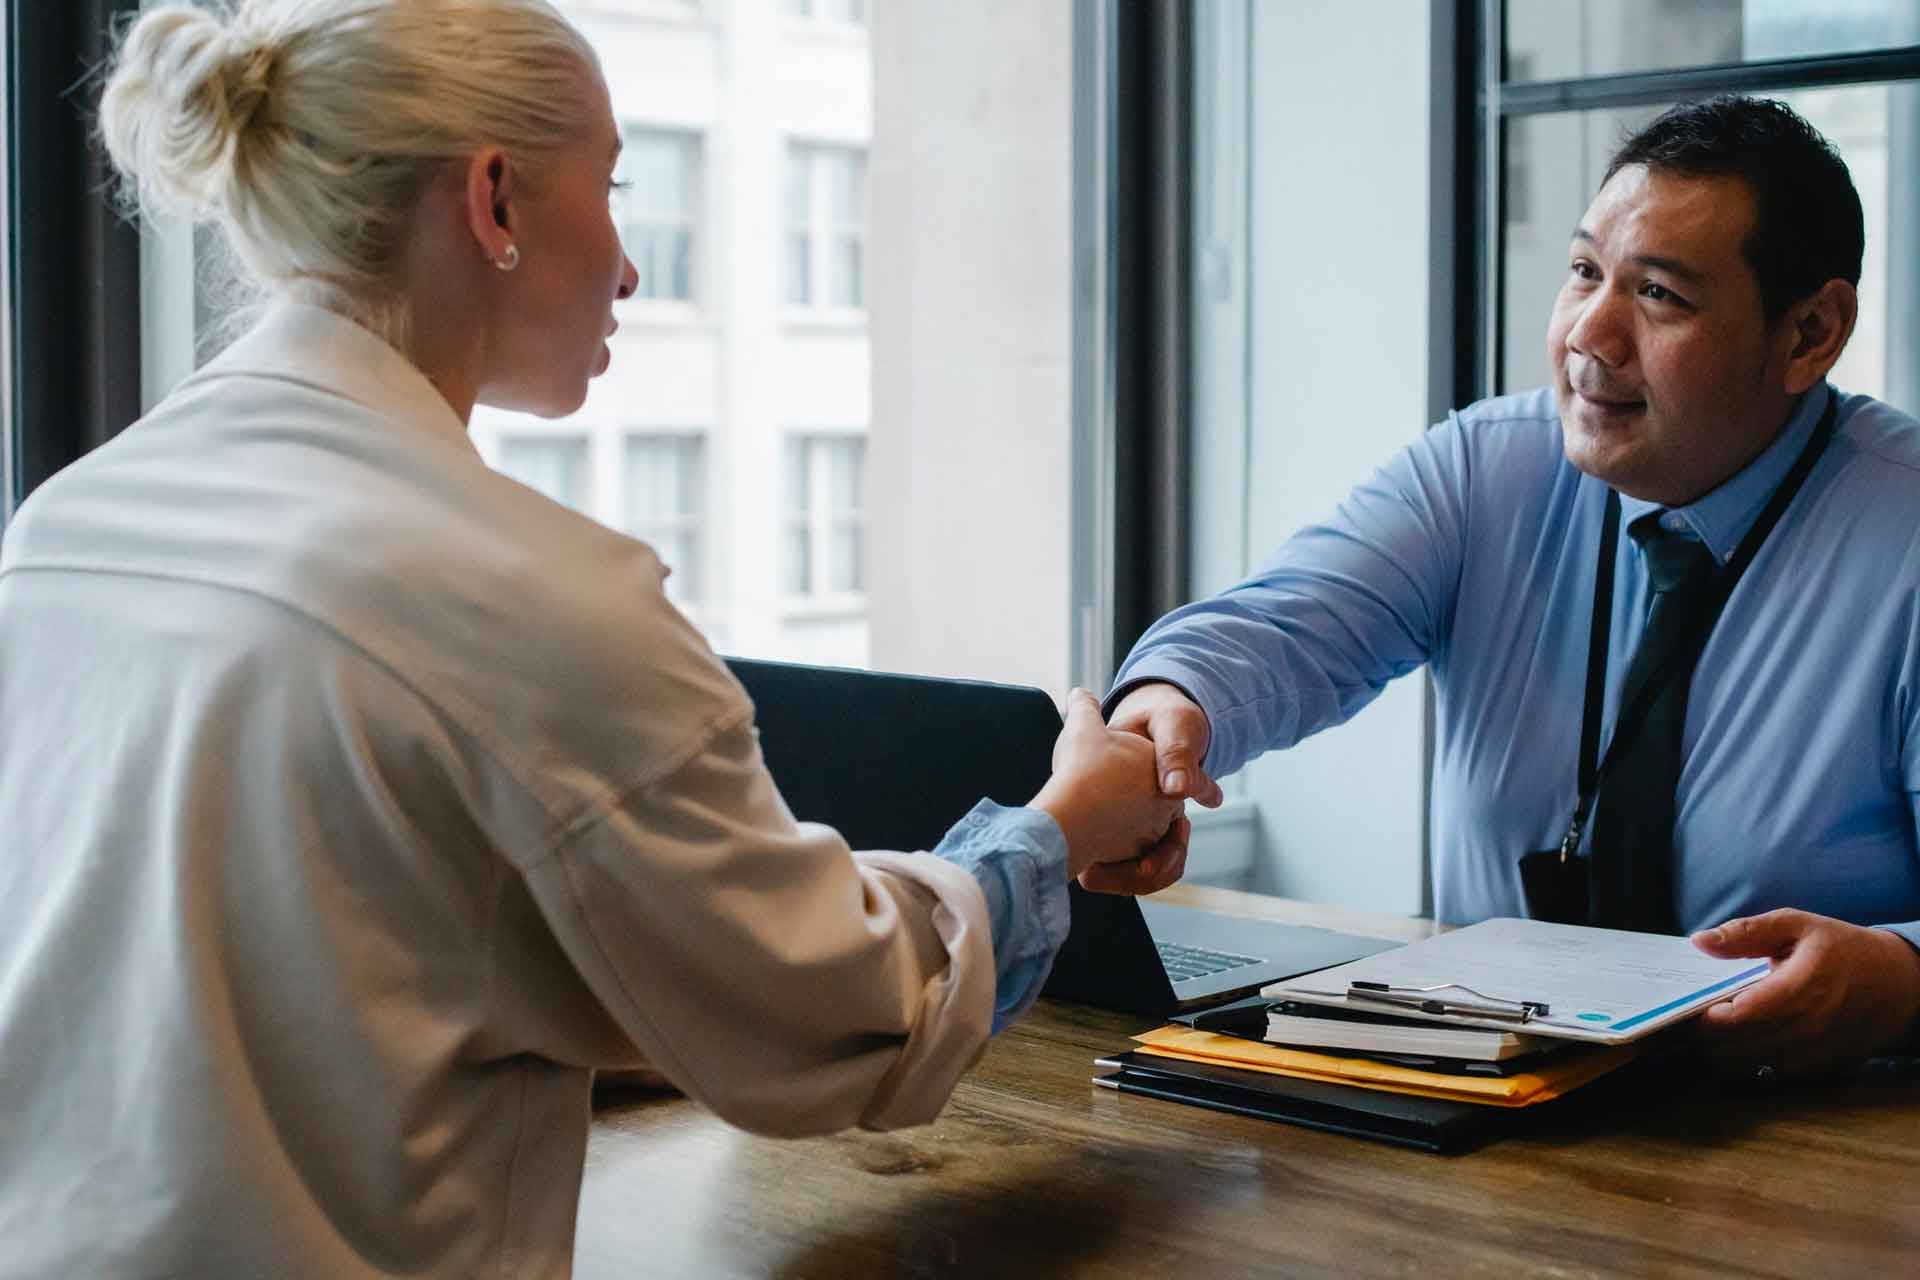 image of recruiter and applicant shaking hands